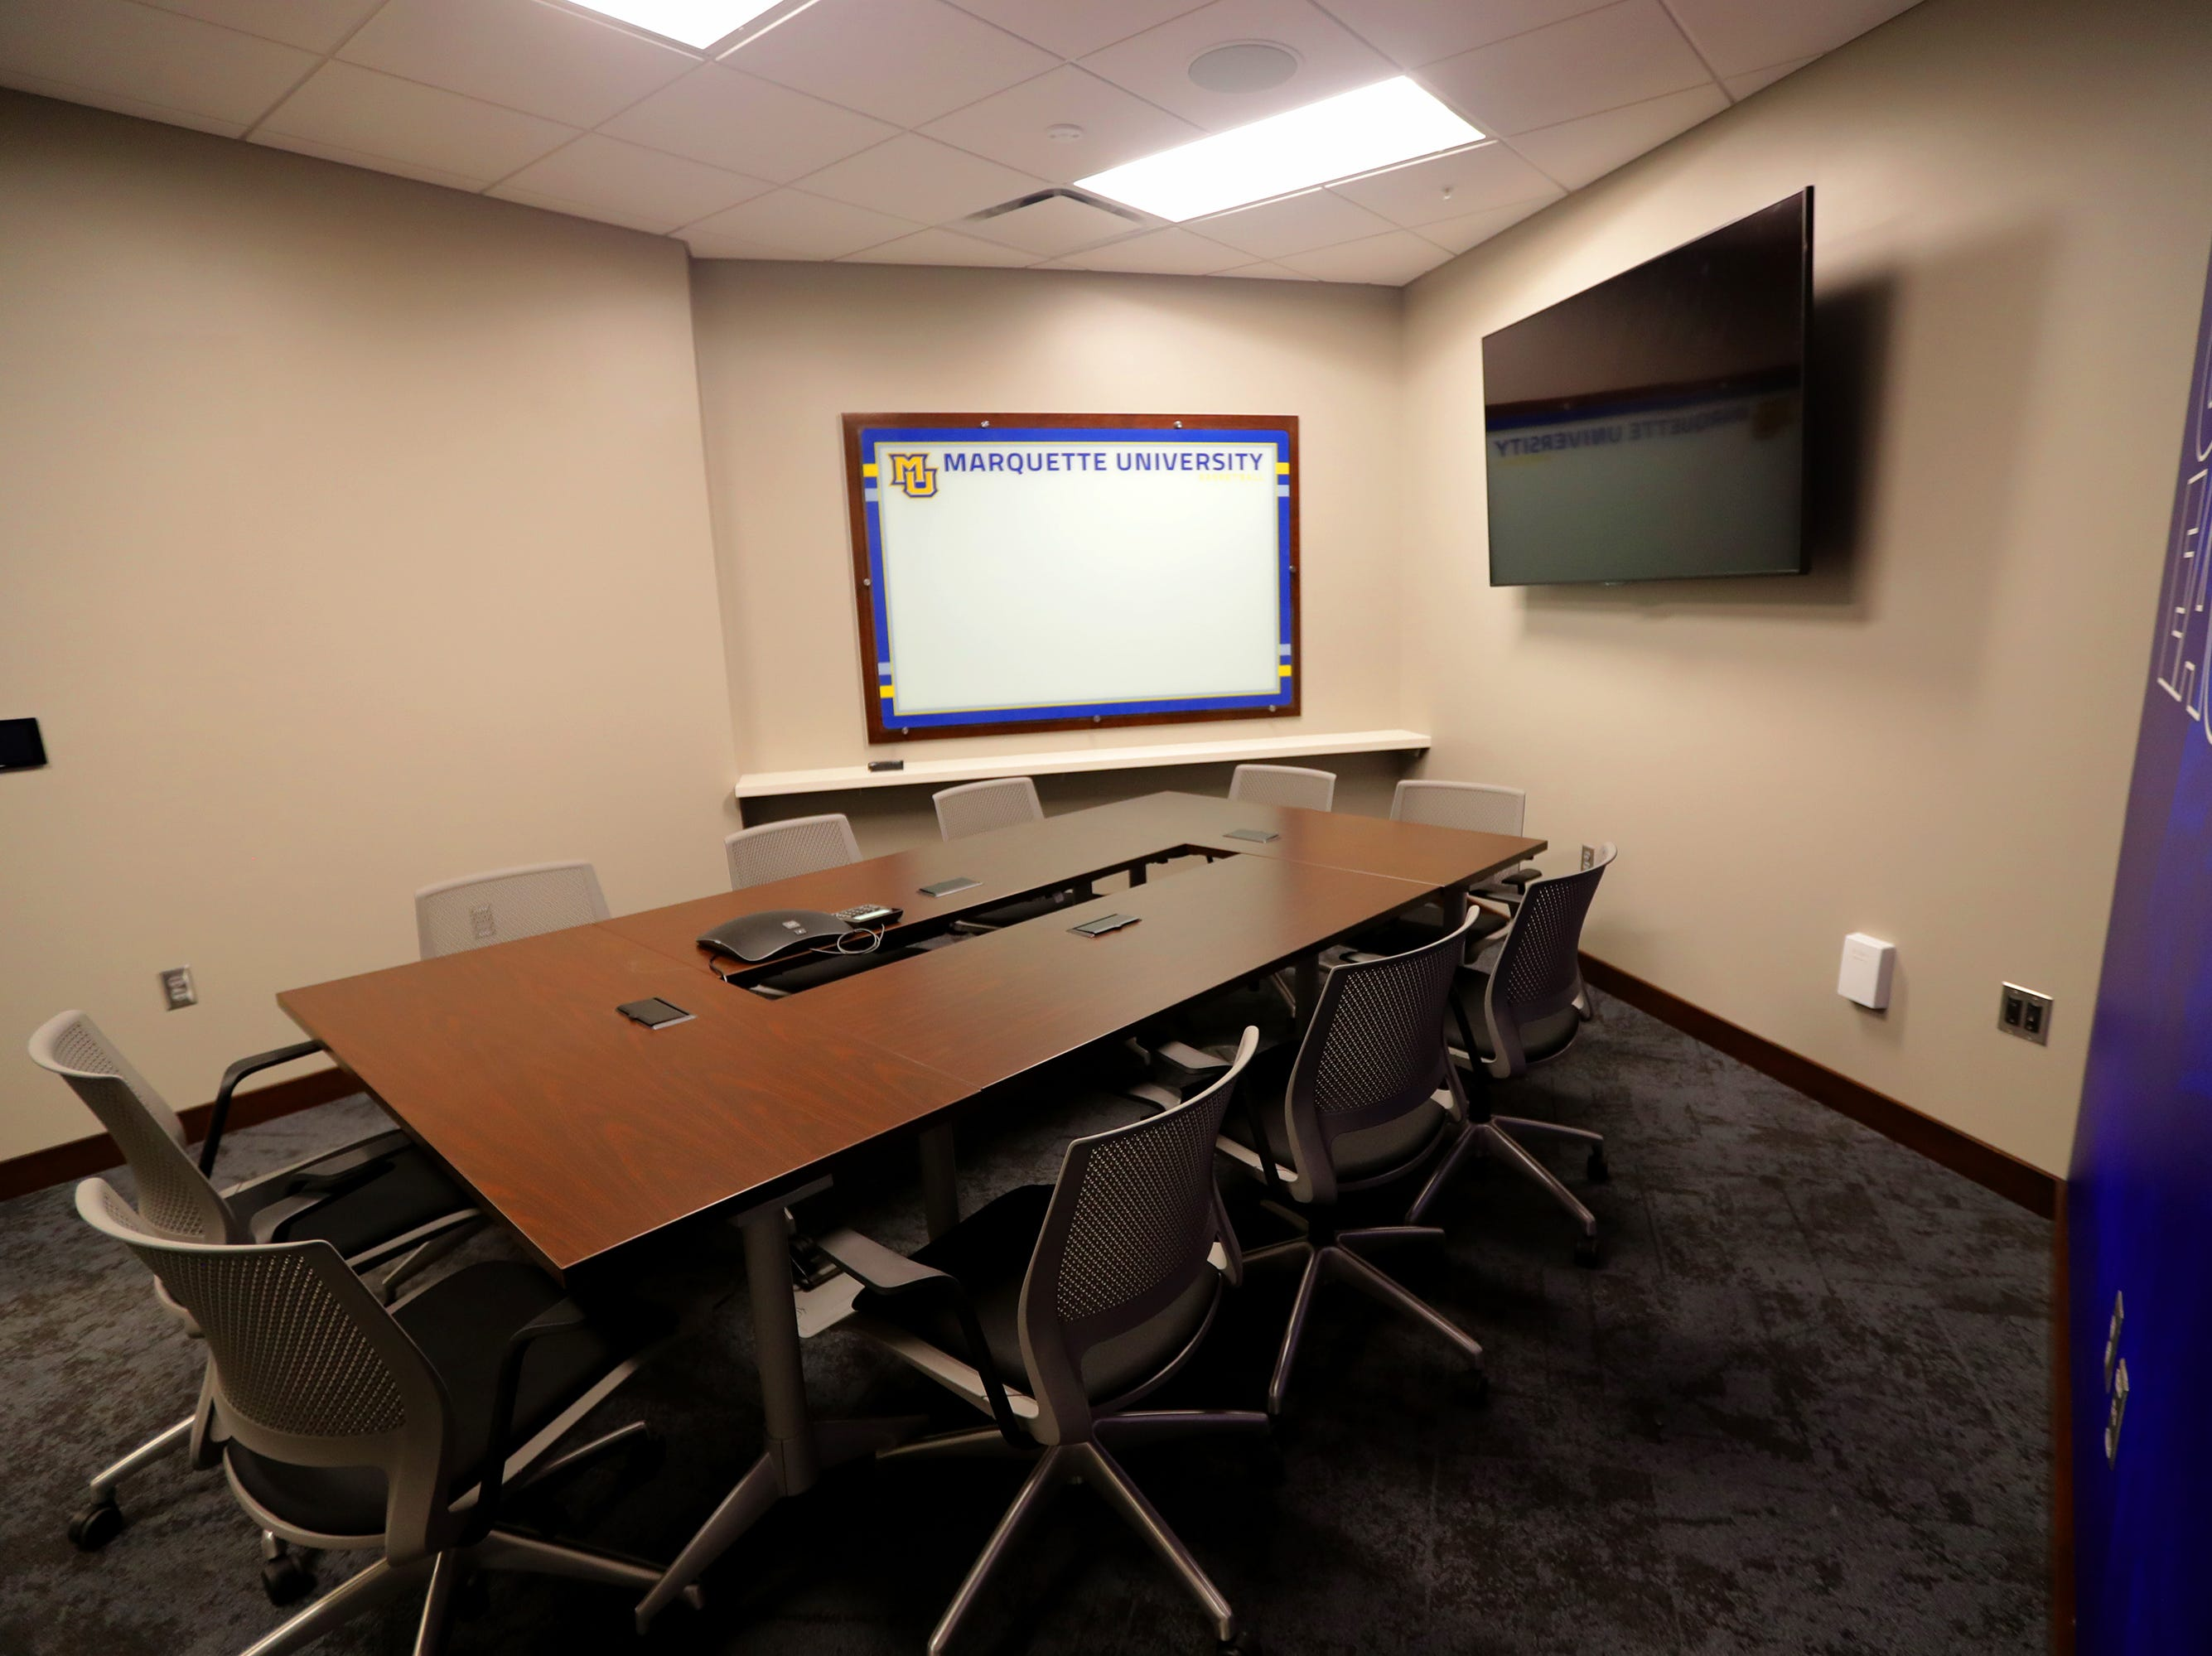 A meeting room includes a flat screen and white board. The Marquette mens' basketball team locker room is complete at the new Fiserve Forum, the home of the Milwaukee Bucks. Monday, August 27, 2018.  -  Photo by Mike De Sisti / Milwaukee Journal Sentinel